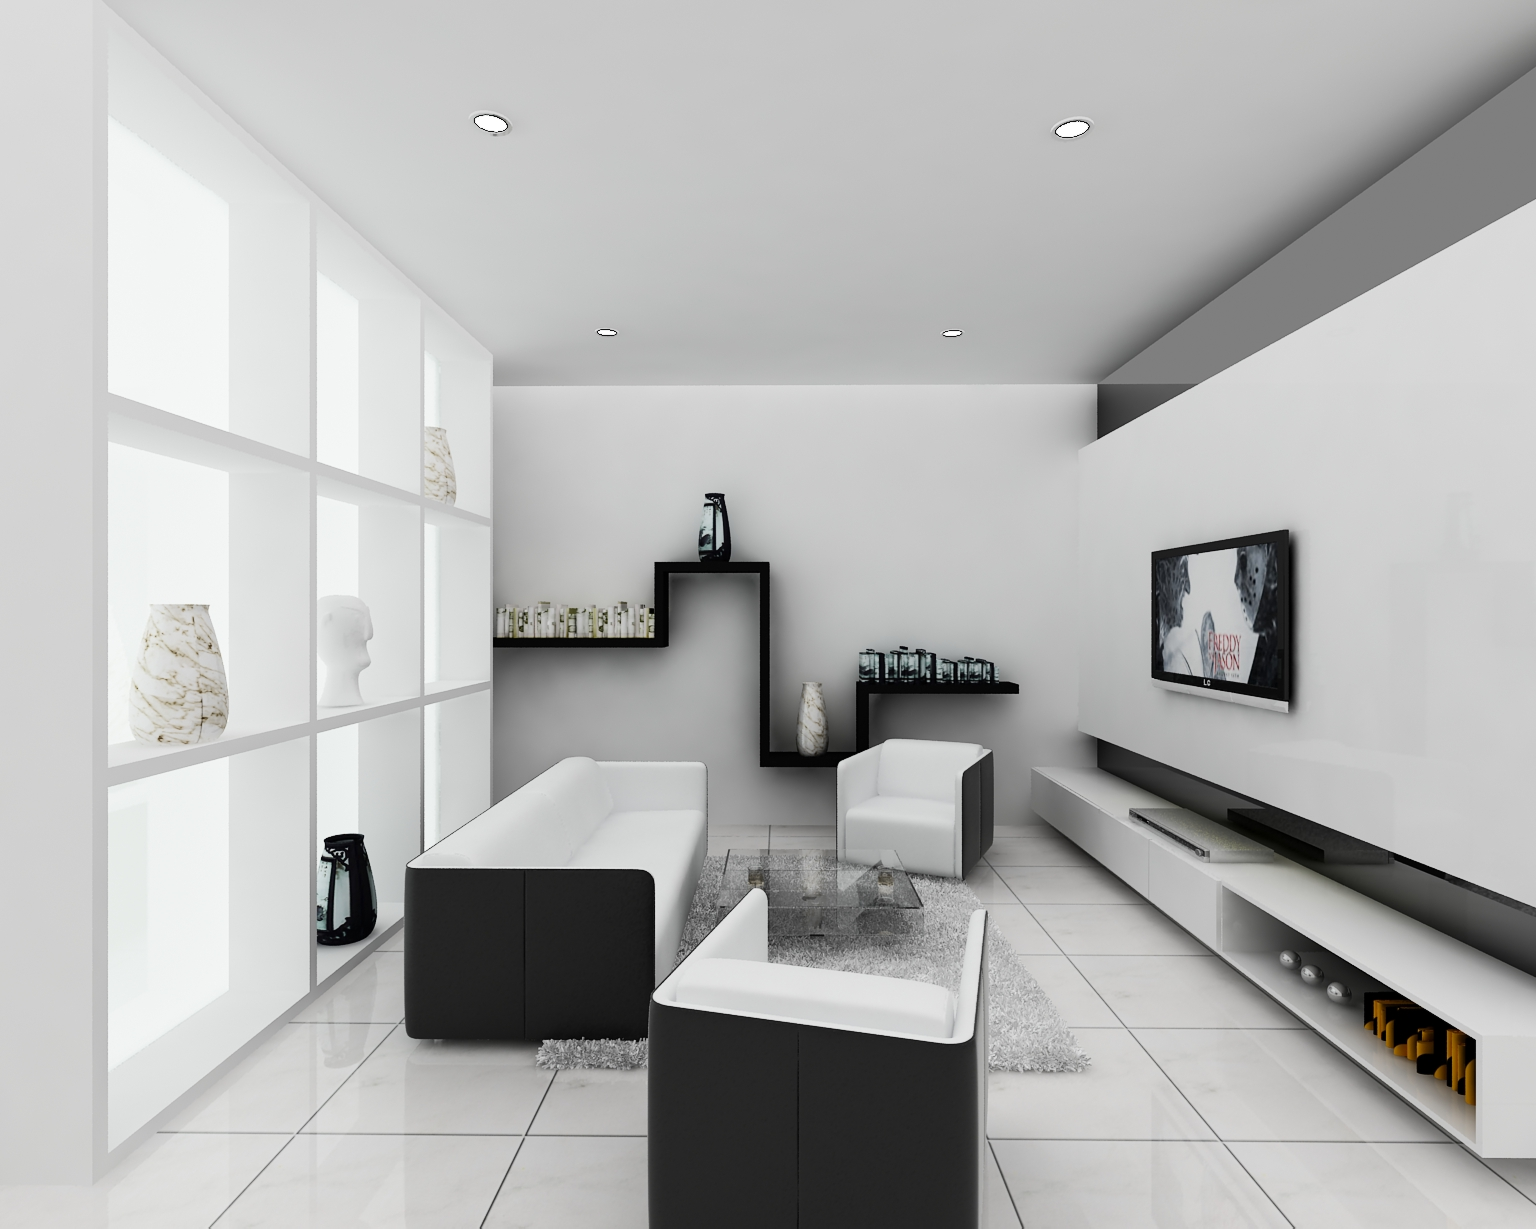 Bw minimalist small living room by forevalonejackk on for Minimalist small living room